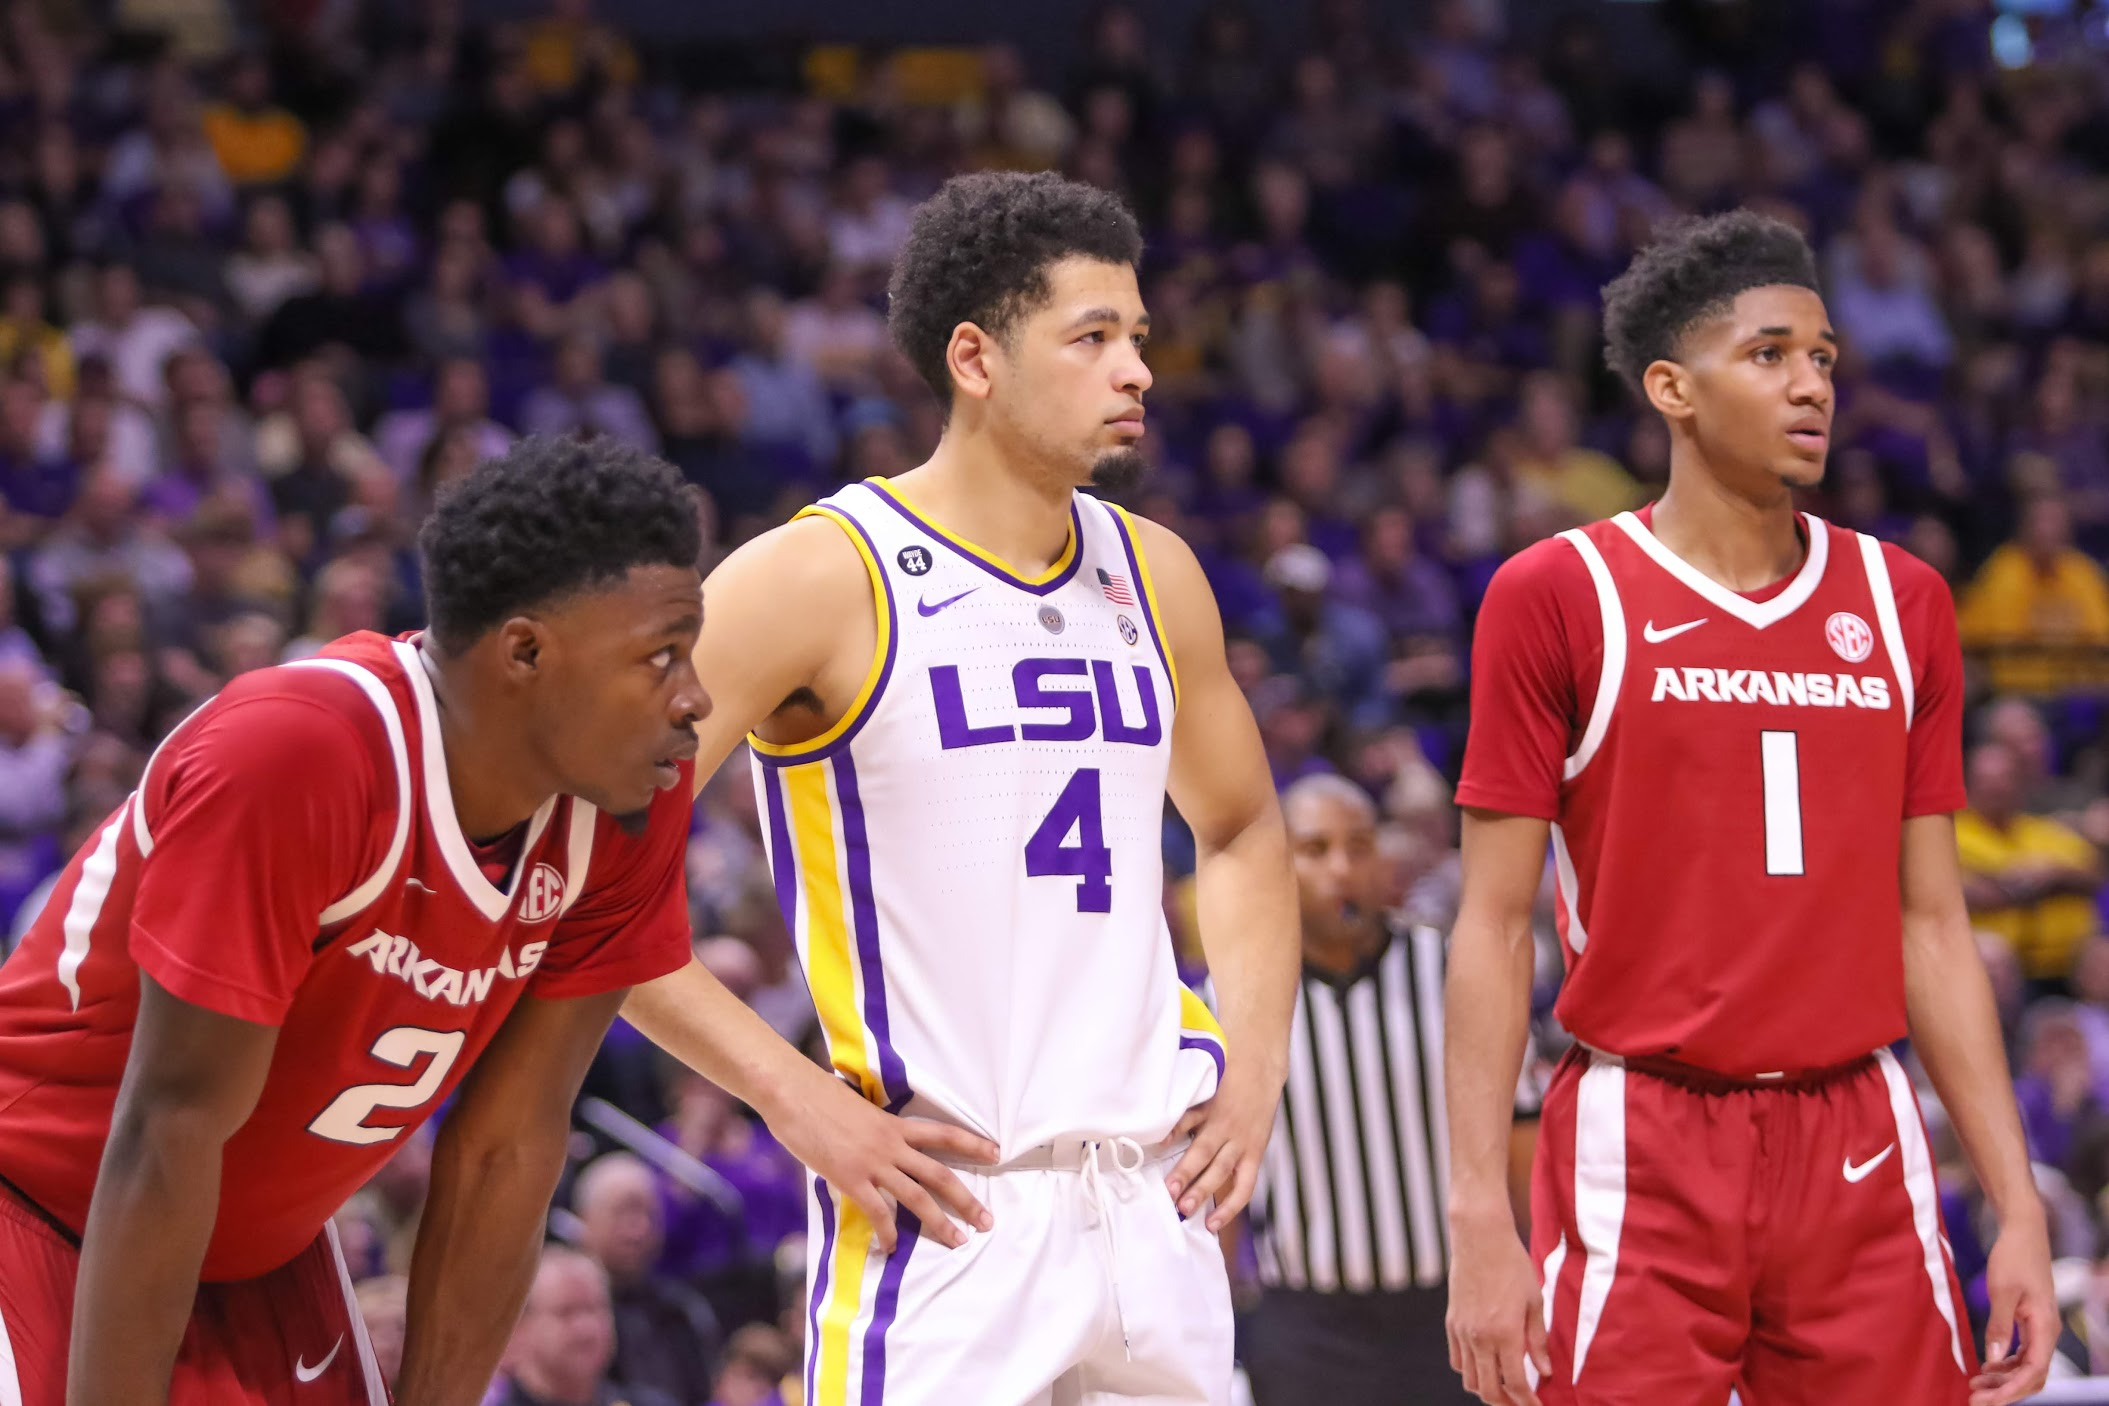 LSU bracing for important three-game stretch